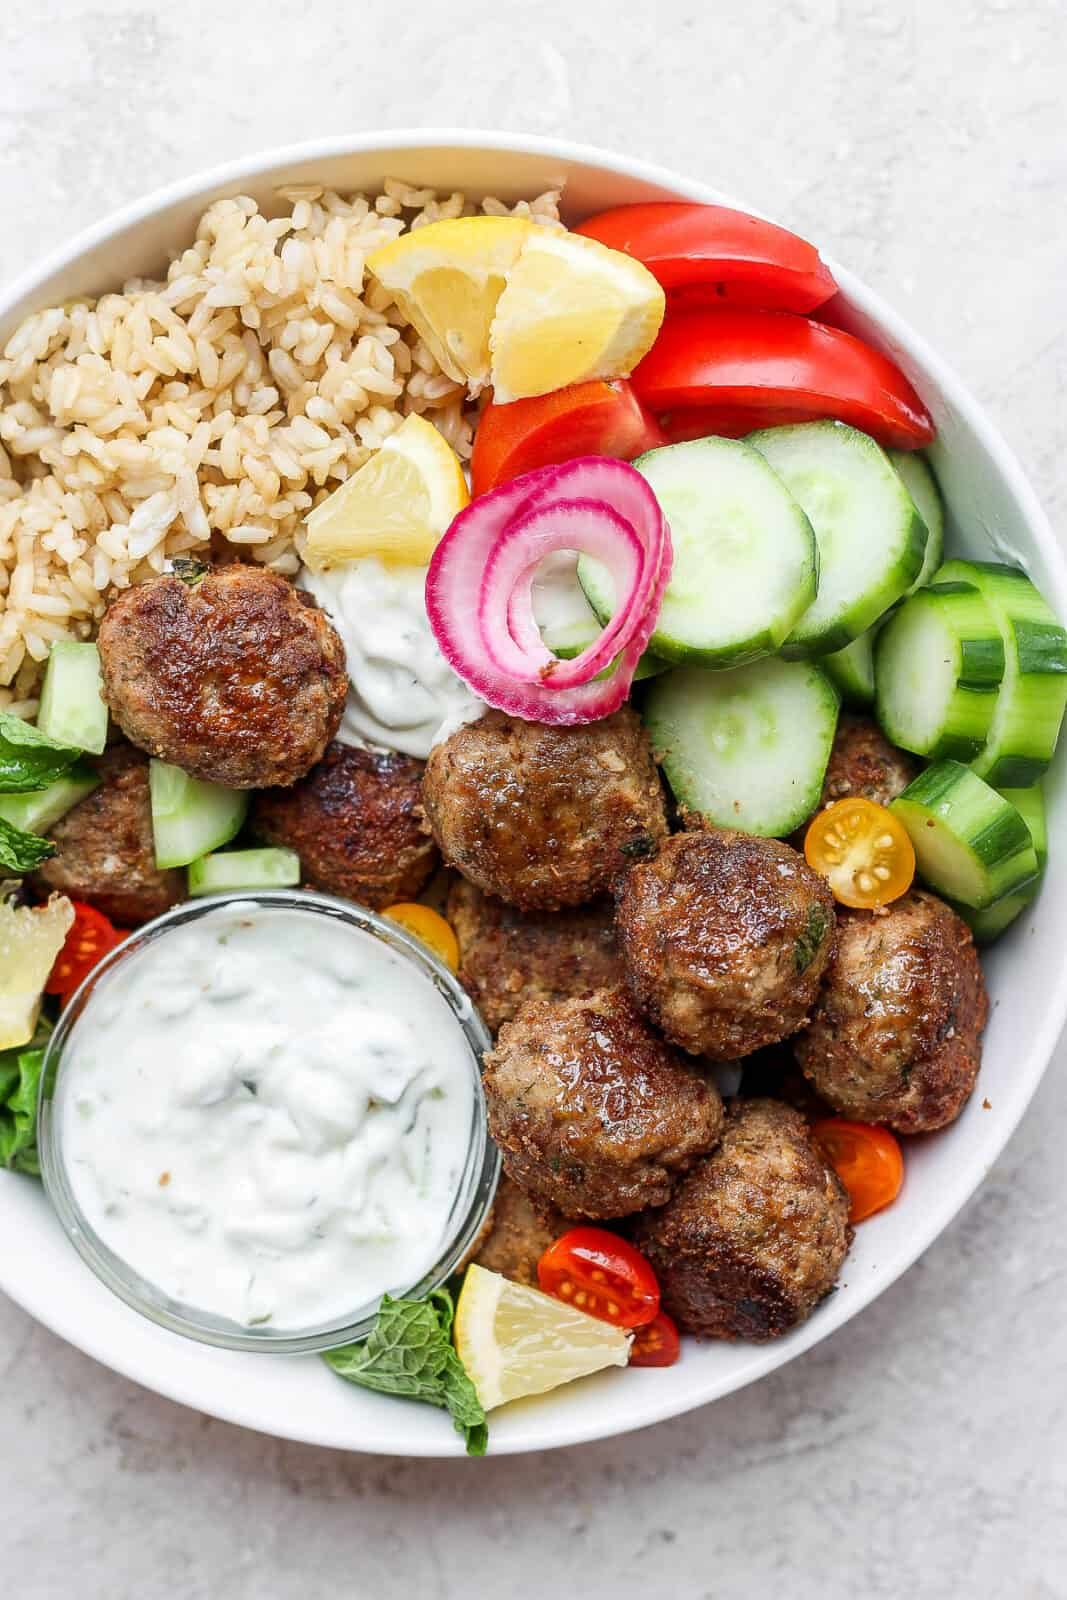 A gyro bowl with lamb meatballs, tzatziki sauce, tomatoes and cucumbers.